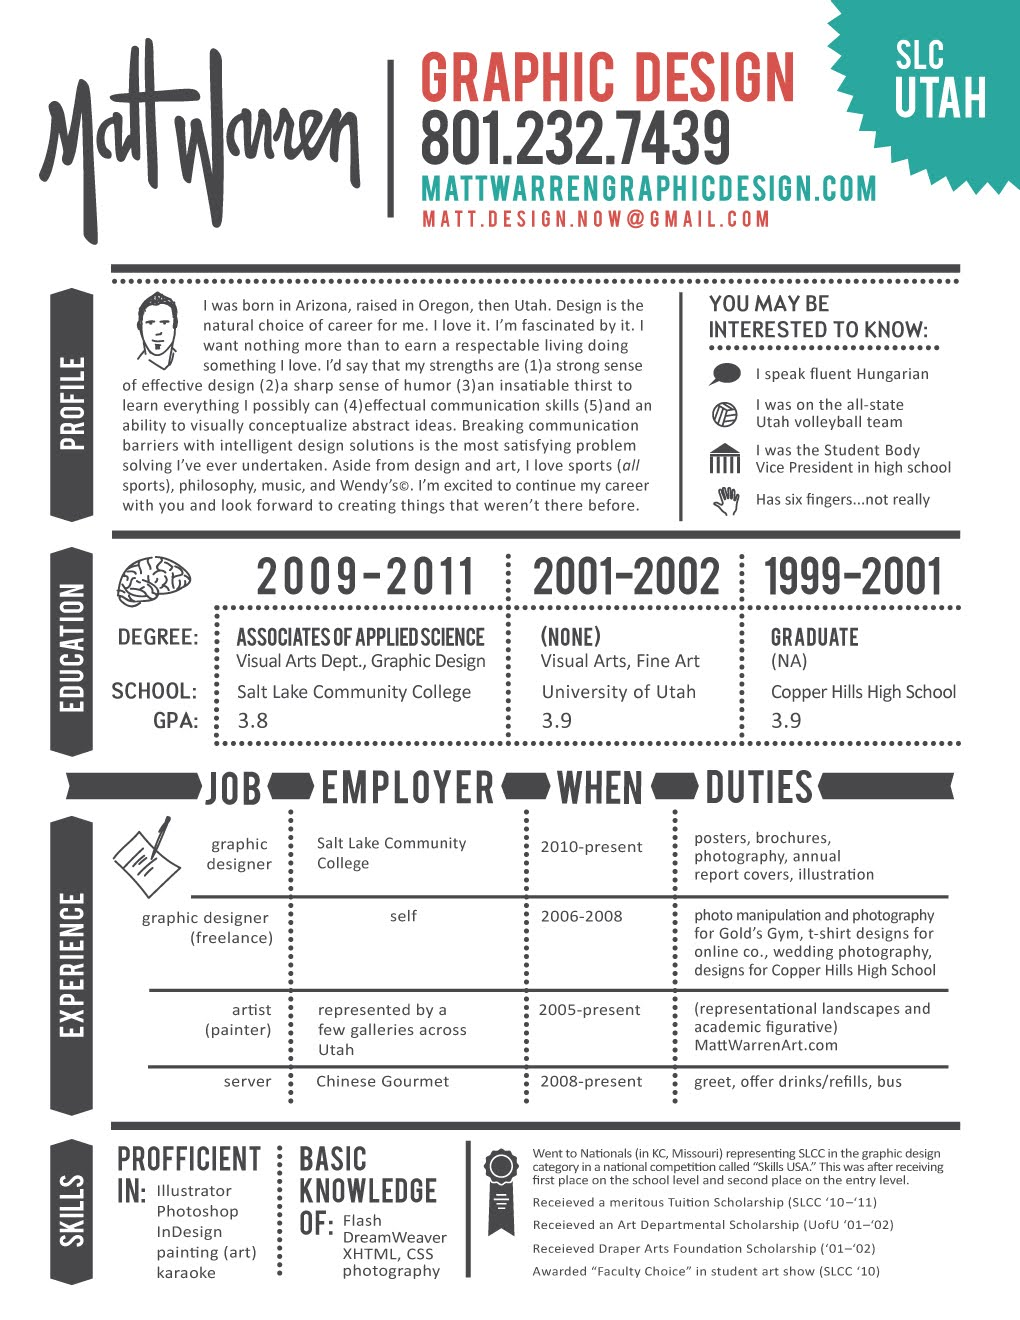 Opposenewapstandardsus  Marvelous  Images About Hire Me On Pinterest  Graphic Designer Resume  With Fascinating  Images About Hire Me On Pinterest  Graphic Designer Resume Resume Design And Resume With Extraordinary Build My Resume Also Education On Resume In Addition College Resume Examples And Free Resume Templates Word As Well As Cover Letter Examples For Resume Additionally Parse Resume From Pinterestcom With Opposenewapstandardsus  Fascinating  Images About Hire Me On Pinterest  Graphic Designer Resume  With Extraordinary  Images About Hire Me On Pinterest  Graphic Designer Resume Resume Design And Resume And Marvelous Build My Resume Also Education On Resume In Addition College Resume Examples From Pinterestcom